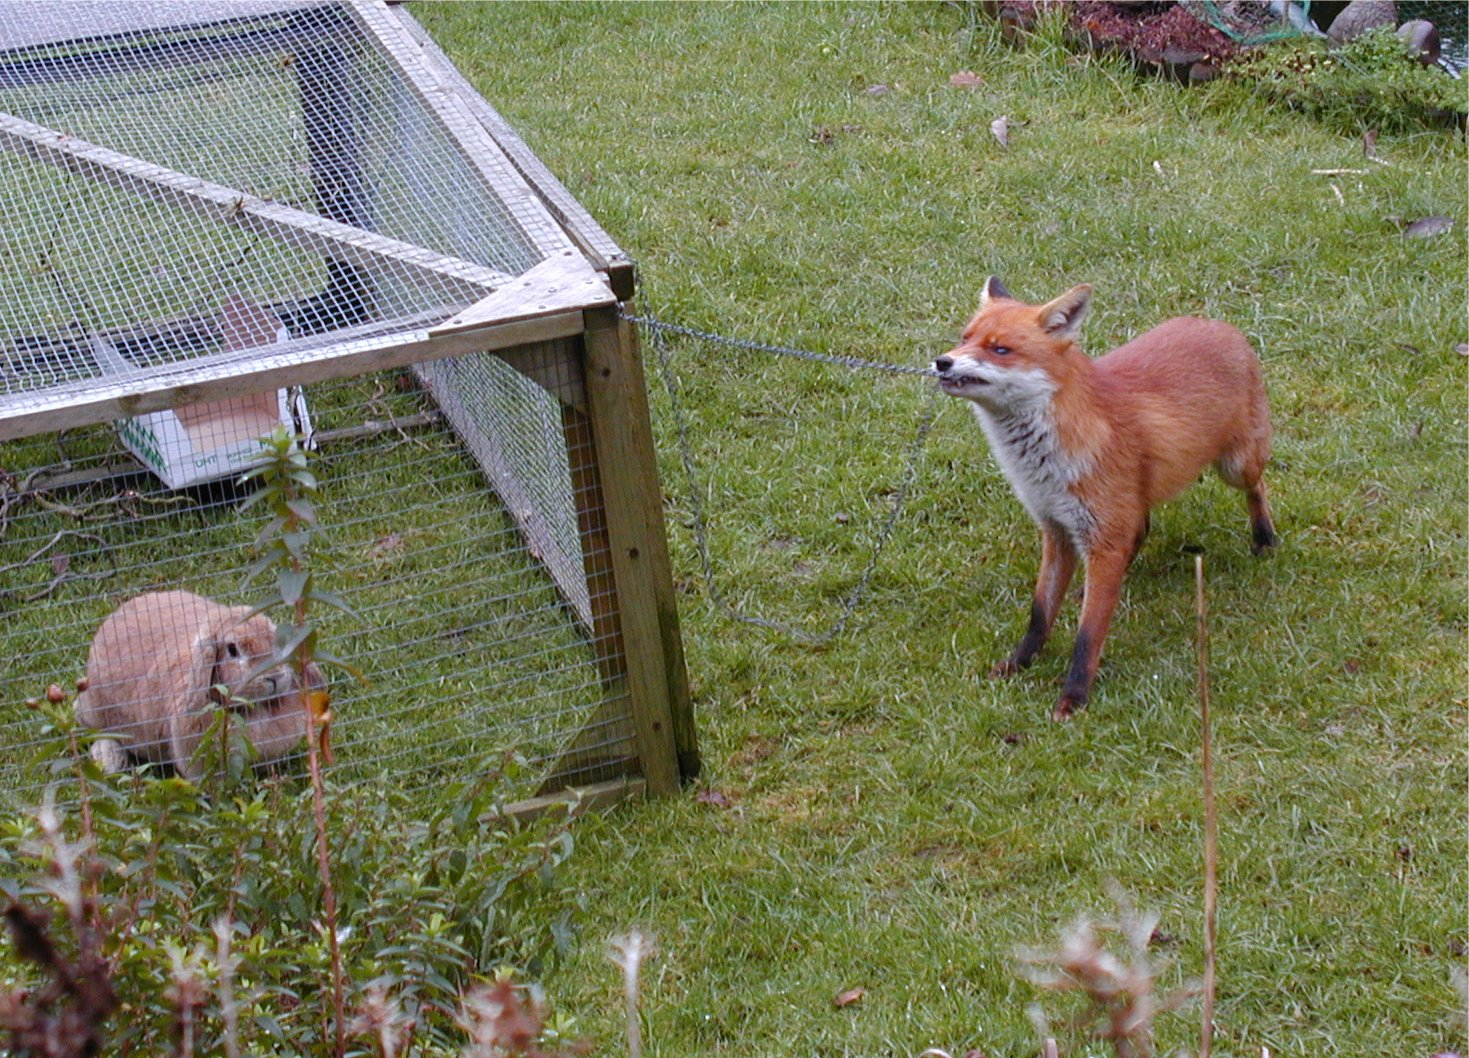 Red fox eating rabbit - photo#28